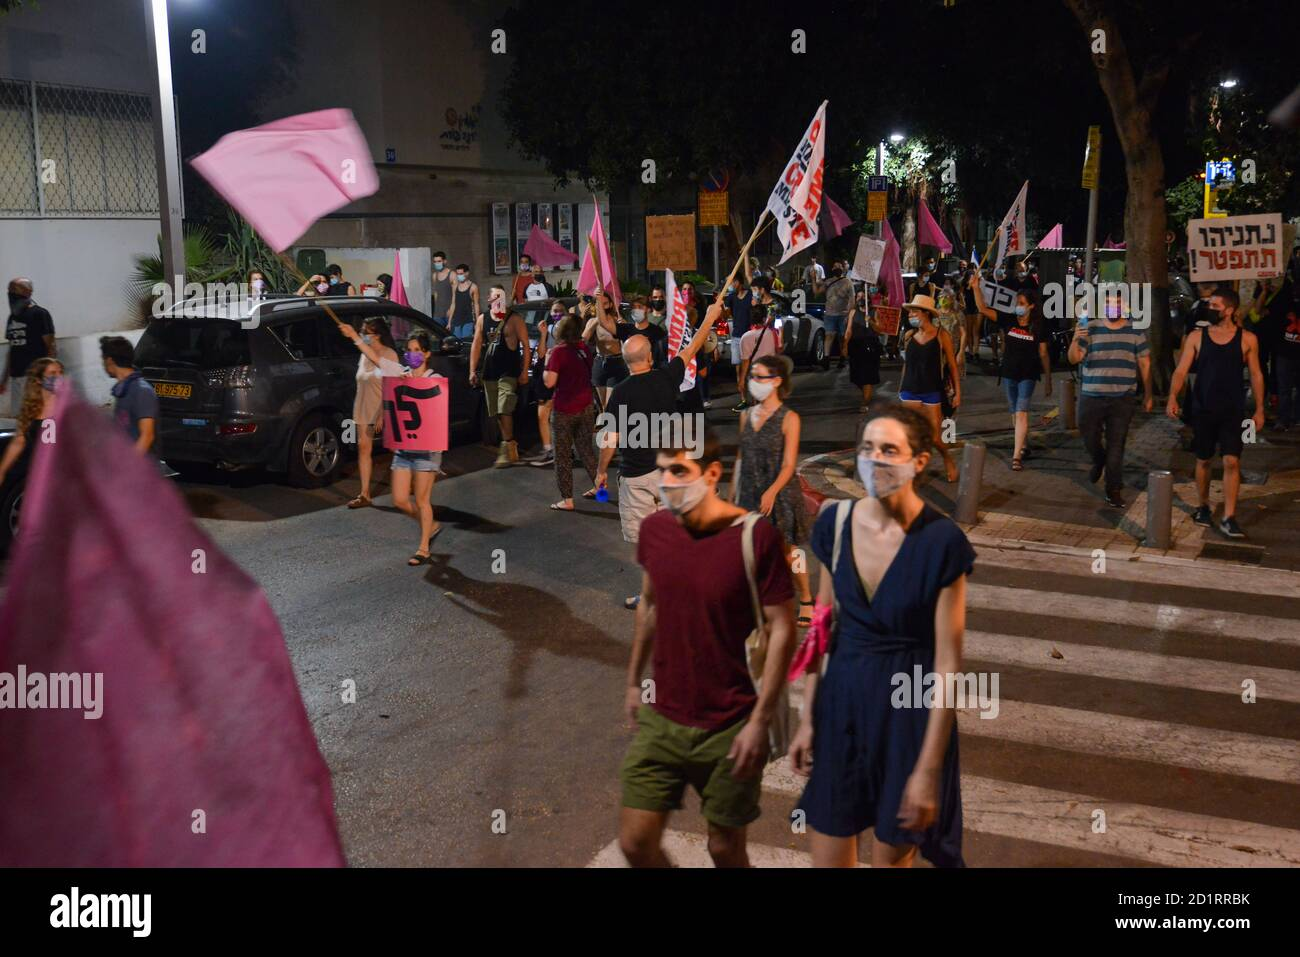 2.10.2020 Tel Aviv, Israel. Protest against Prime minister Netanyahu and second Coronavirus lockdown. Early stages of the protest in which hundreds were marching in Tel Aviv streets calling Bibi Netanyahu to resign. The pink flags symbolize the weakened populations, grace, empathy had become the youth symbol of what they see as the revolution Stock Photo